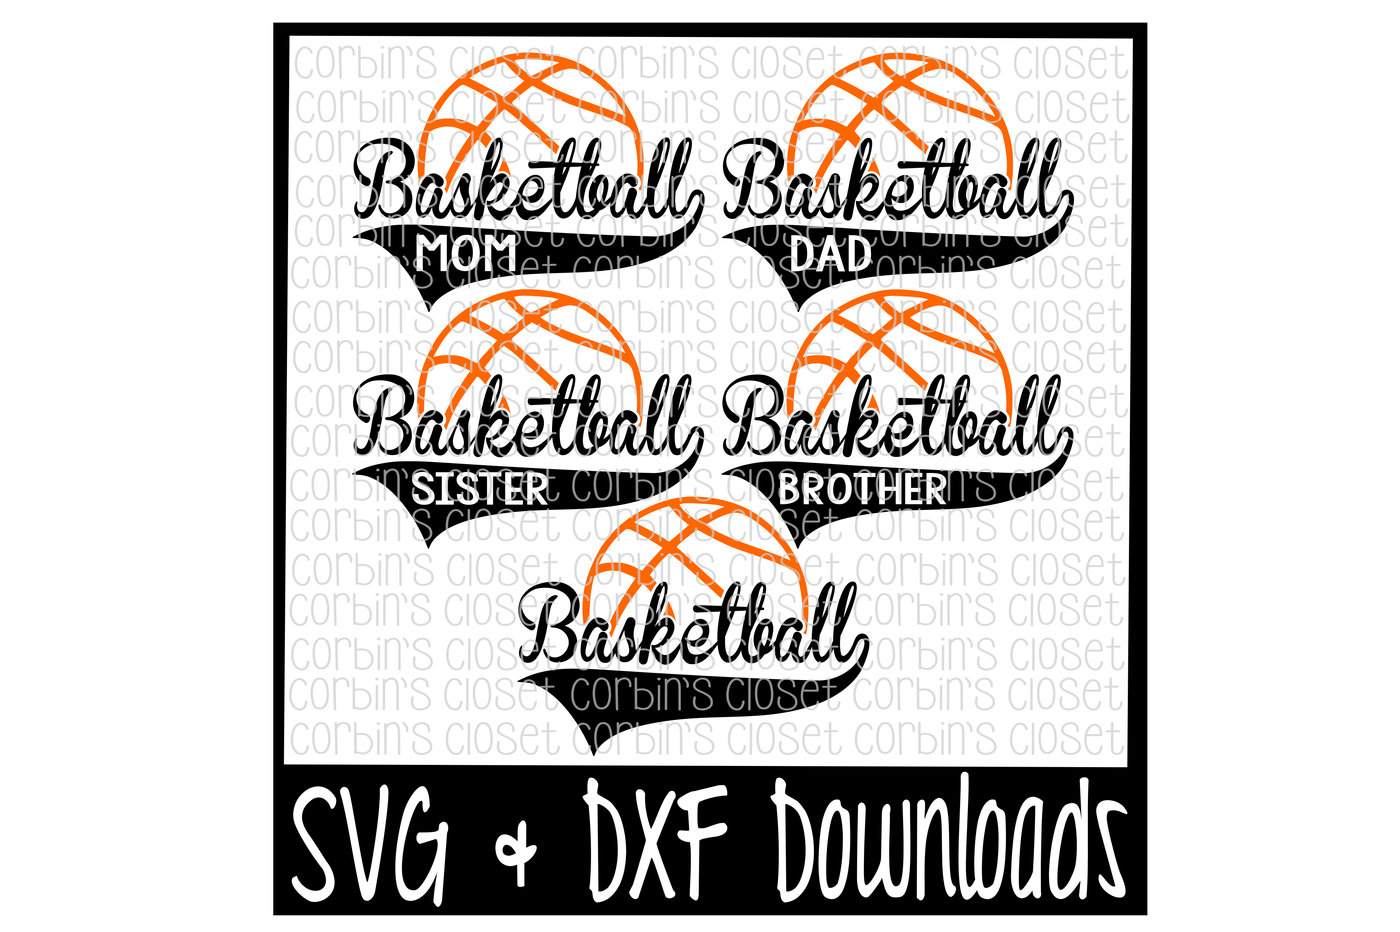 Clipart basketball dad vector library library Basketball Mom * Dad * Sister * Brother Cutting File by Corbins SVG ... vector library library